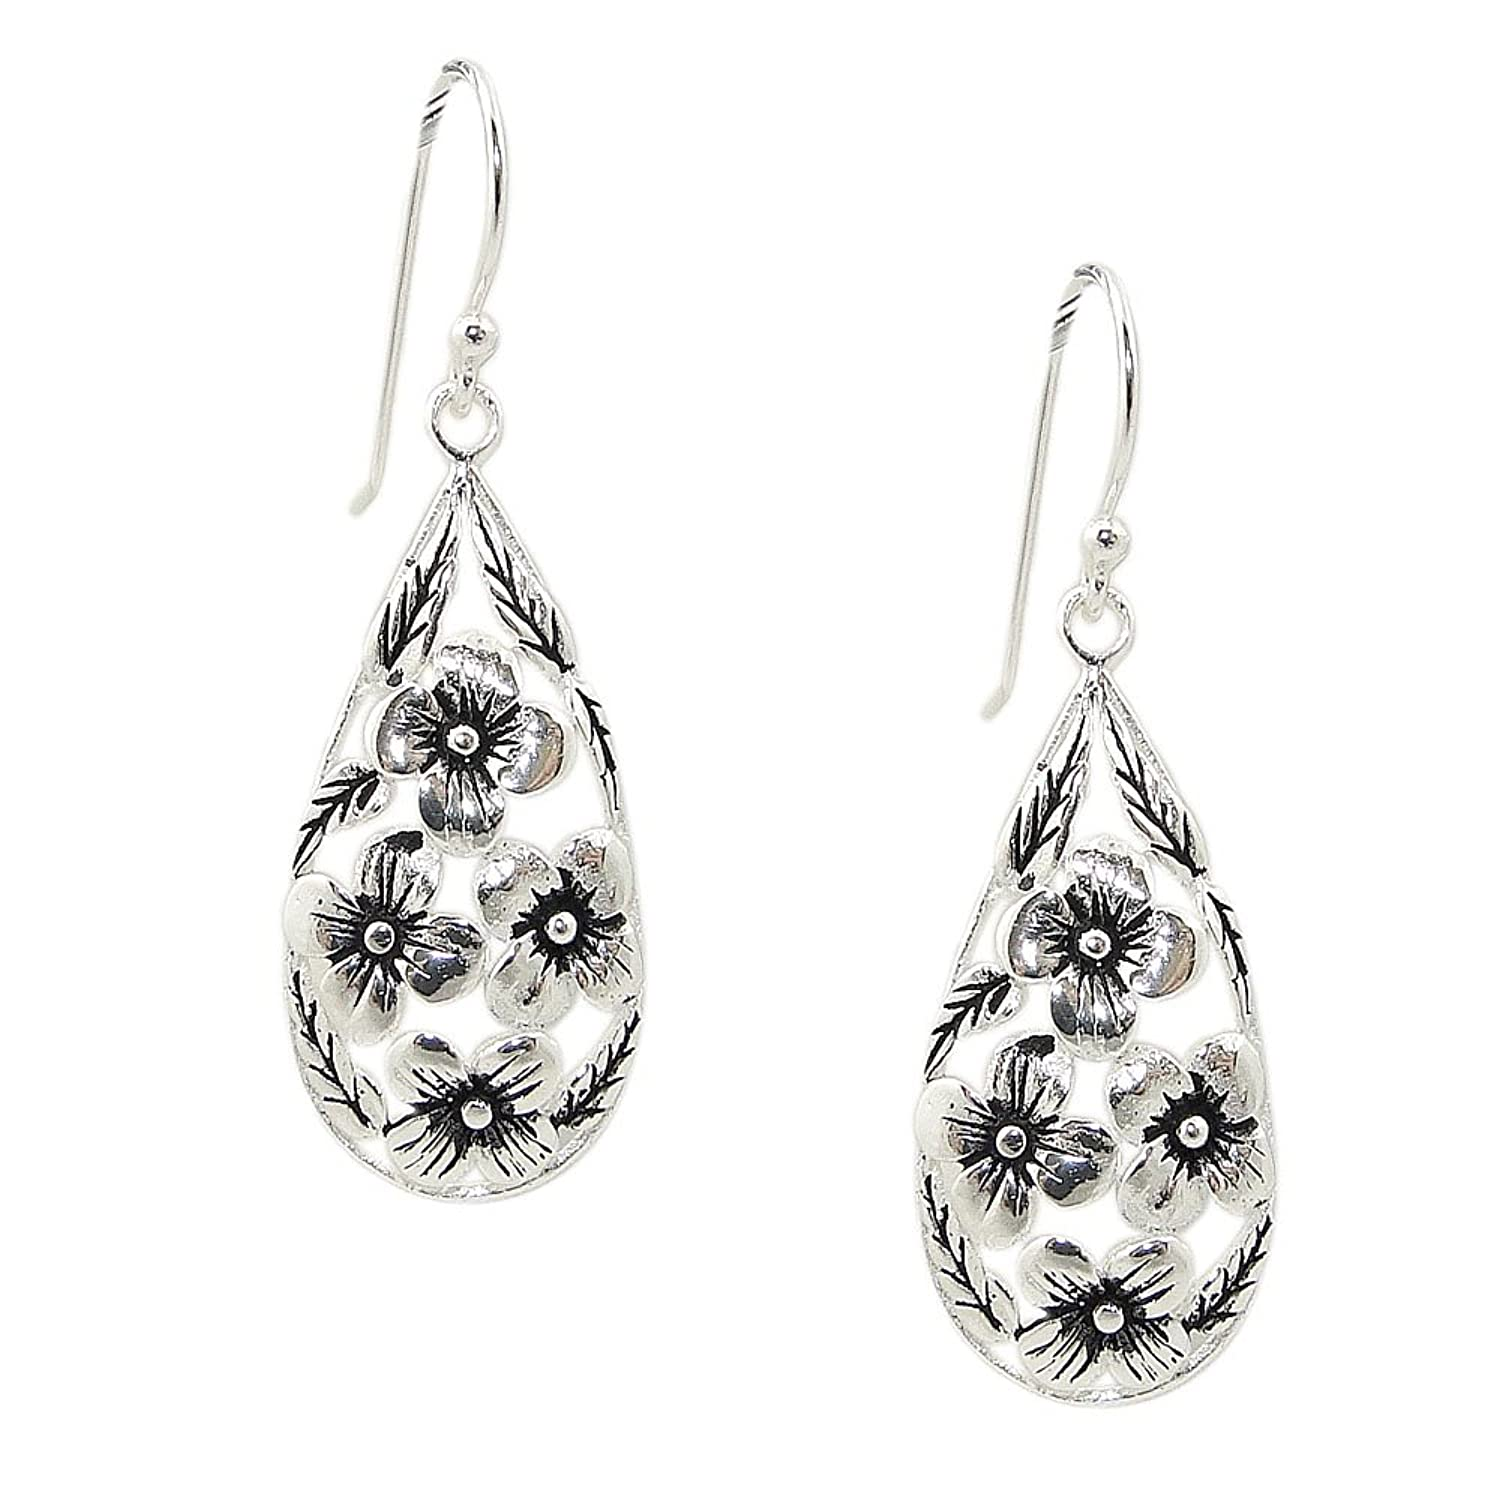 Sterling Silver Dome Teardrop earrings with Oxidized Flower 100% Hypoallergenic and Nickel Free